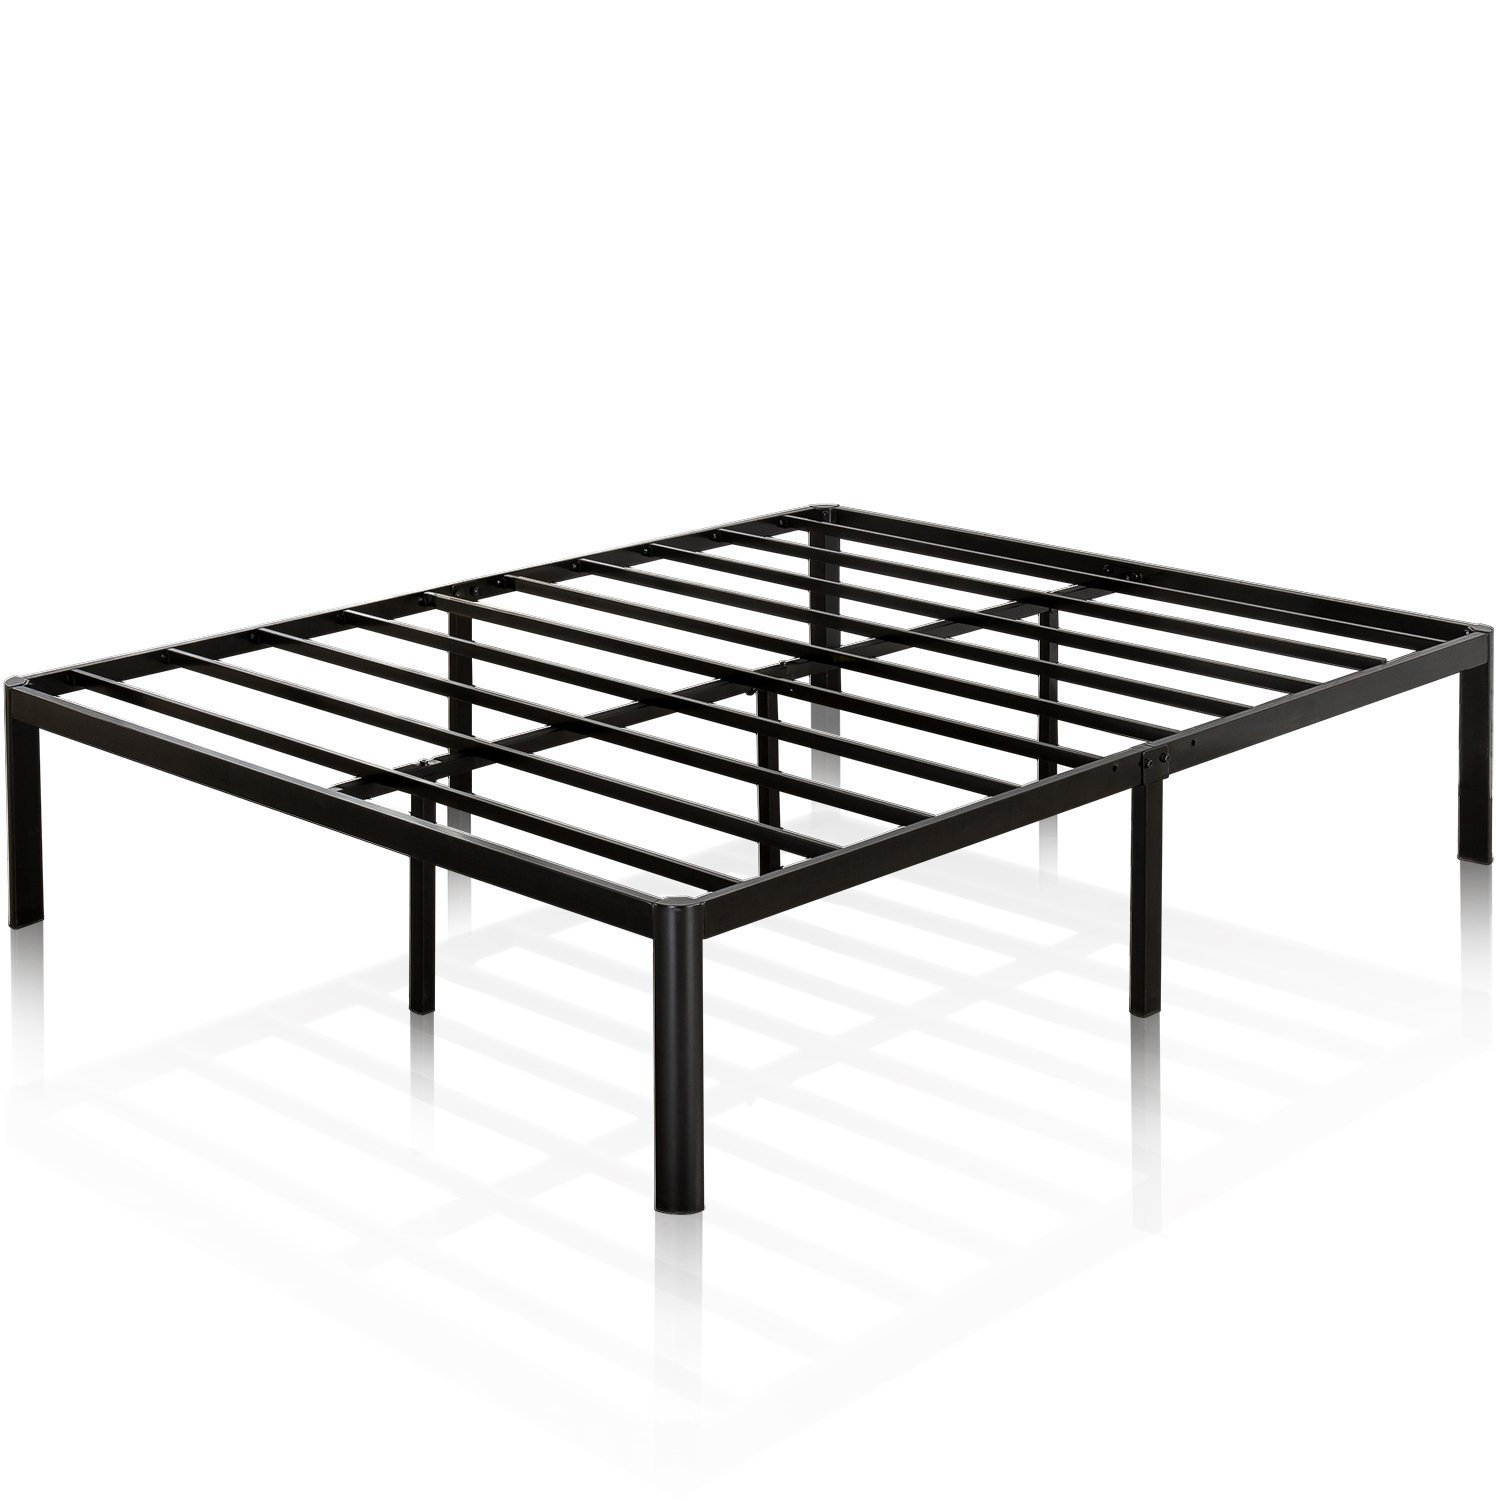 Zinus Van 16 Inch Metal Platform Bed Frame with Steel Slat Support / Mattress Foundation, King by Zinus (Image #1)